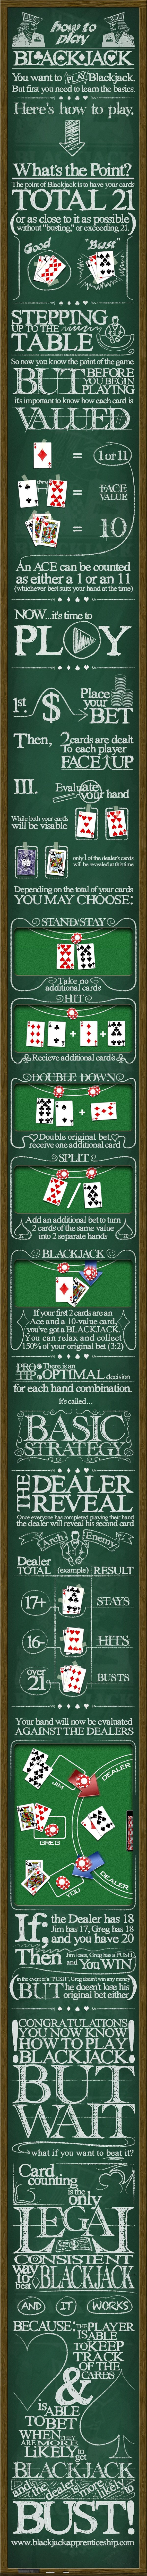 How to play BlackJack...